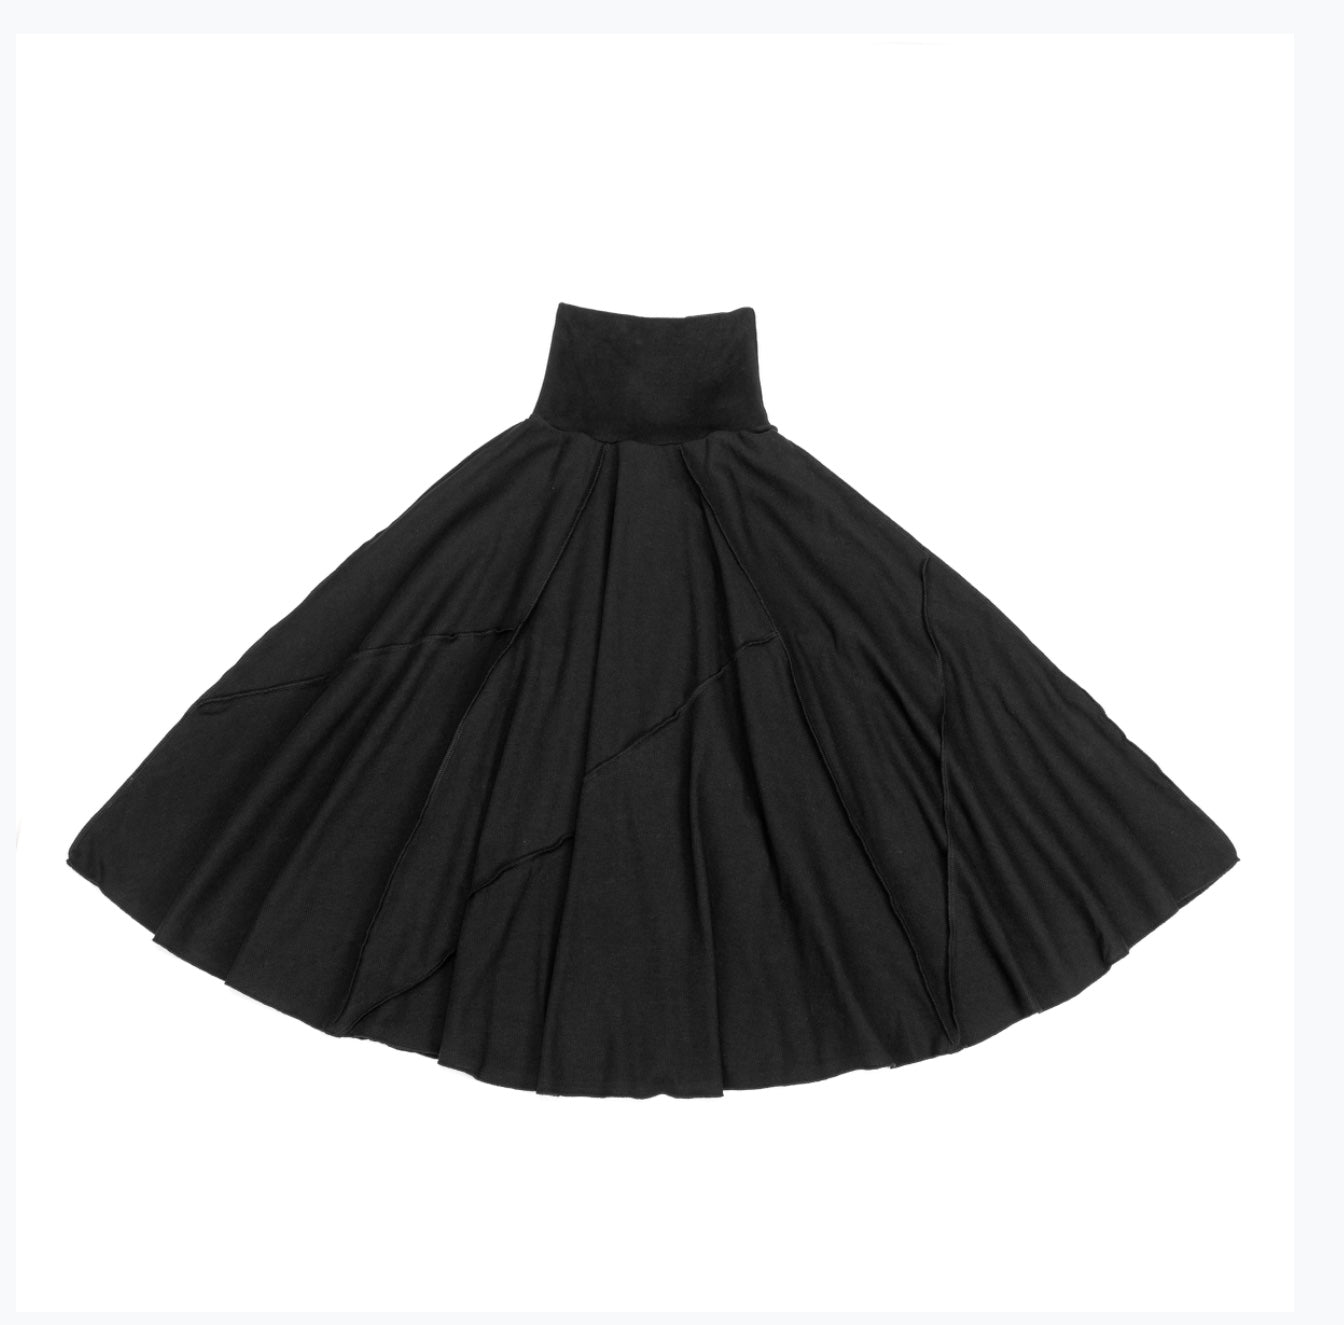 Flairy stich detail skirt